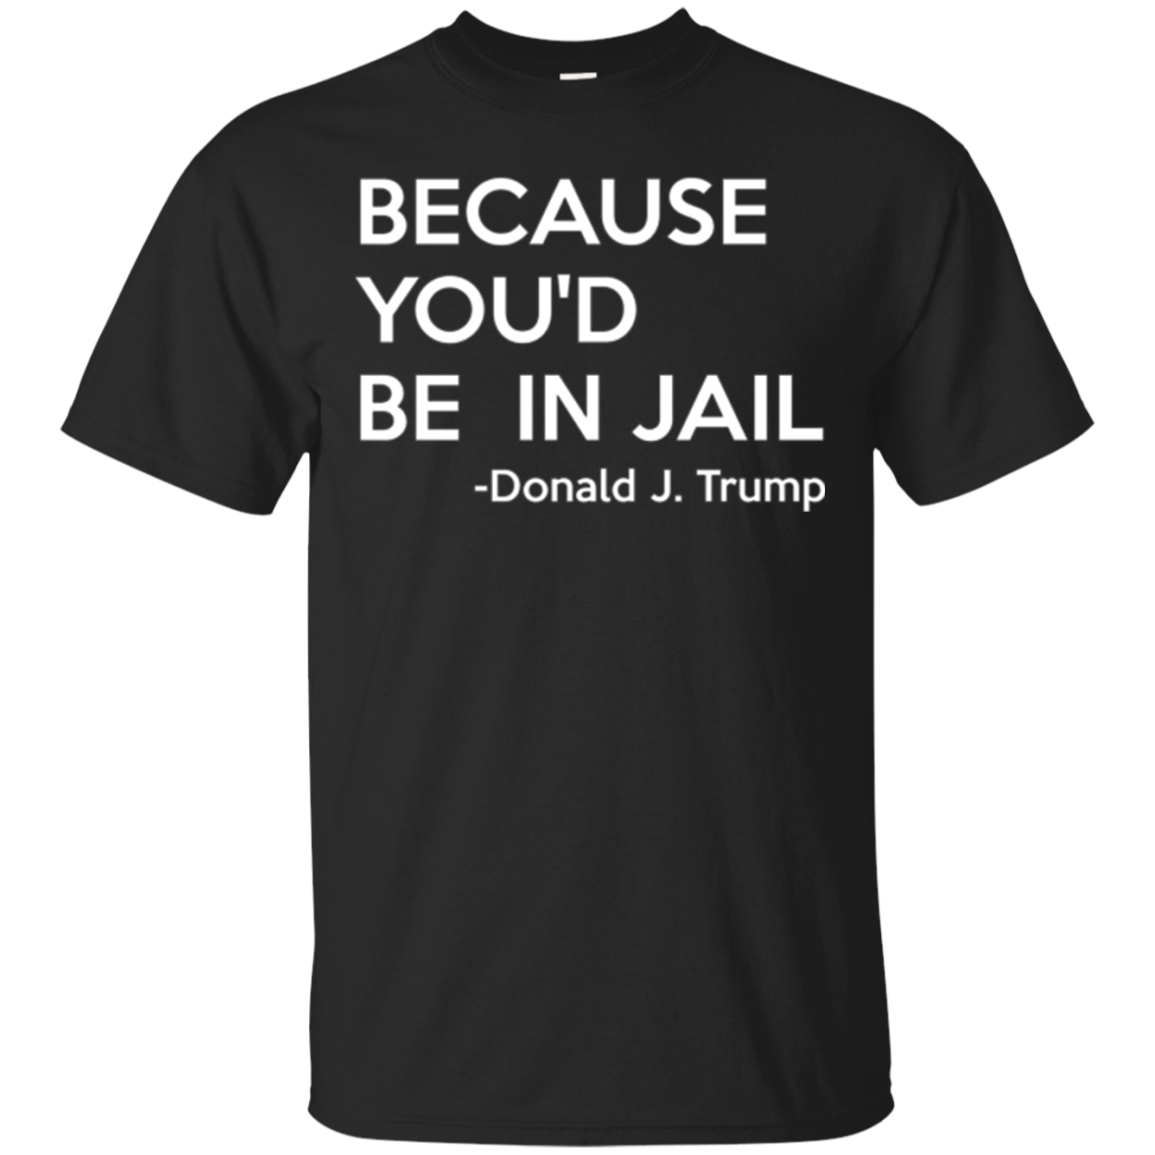 Because You'd Be In Jail T Shirt - Donald Trump Quote